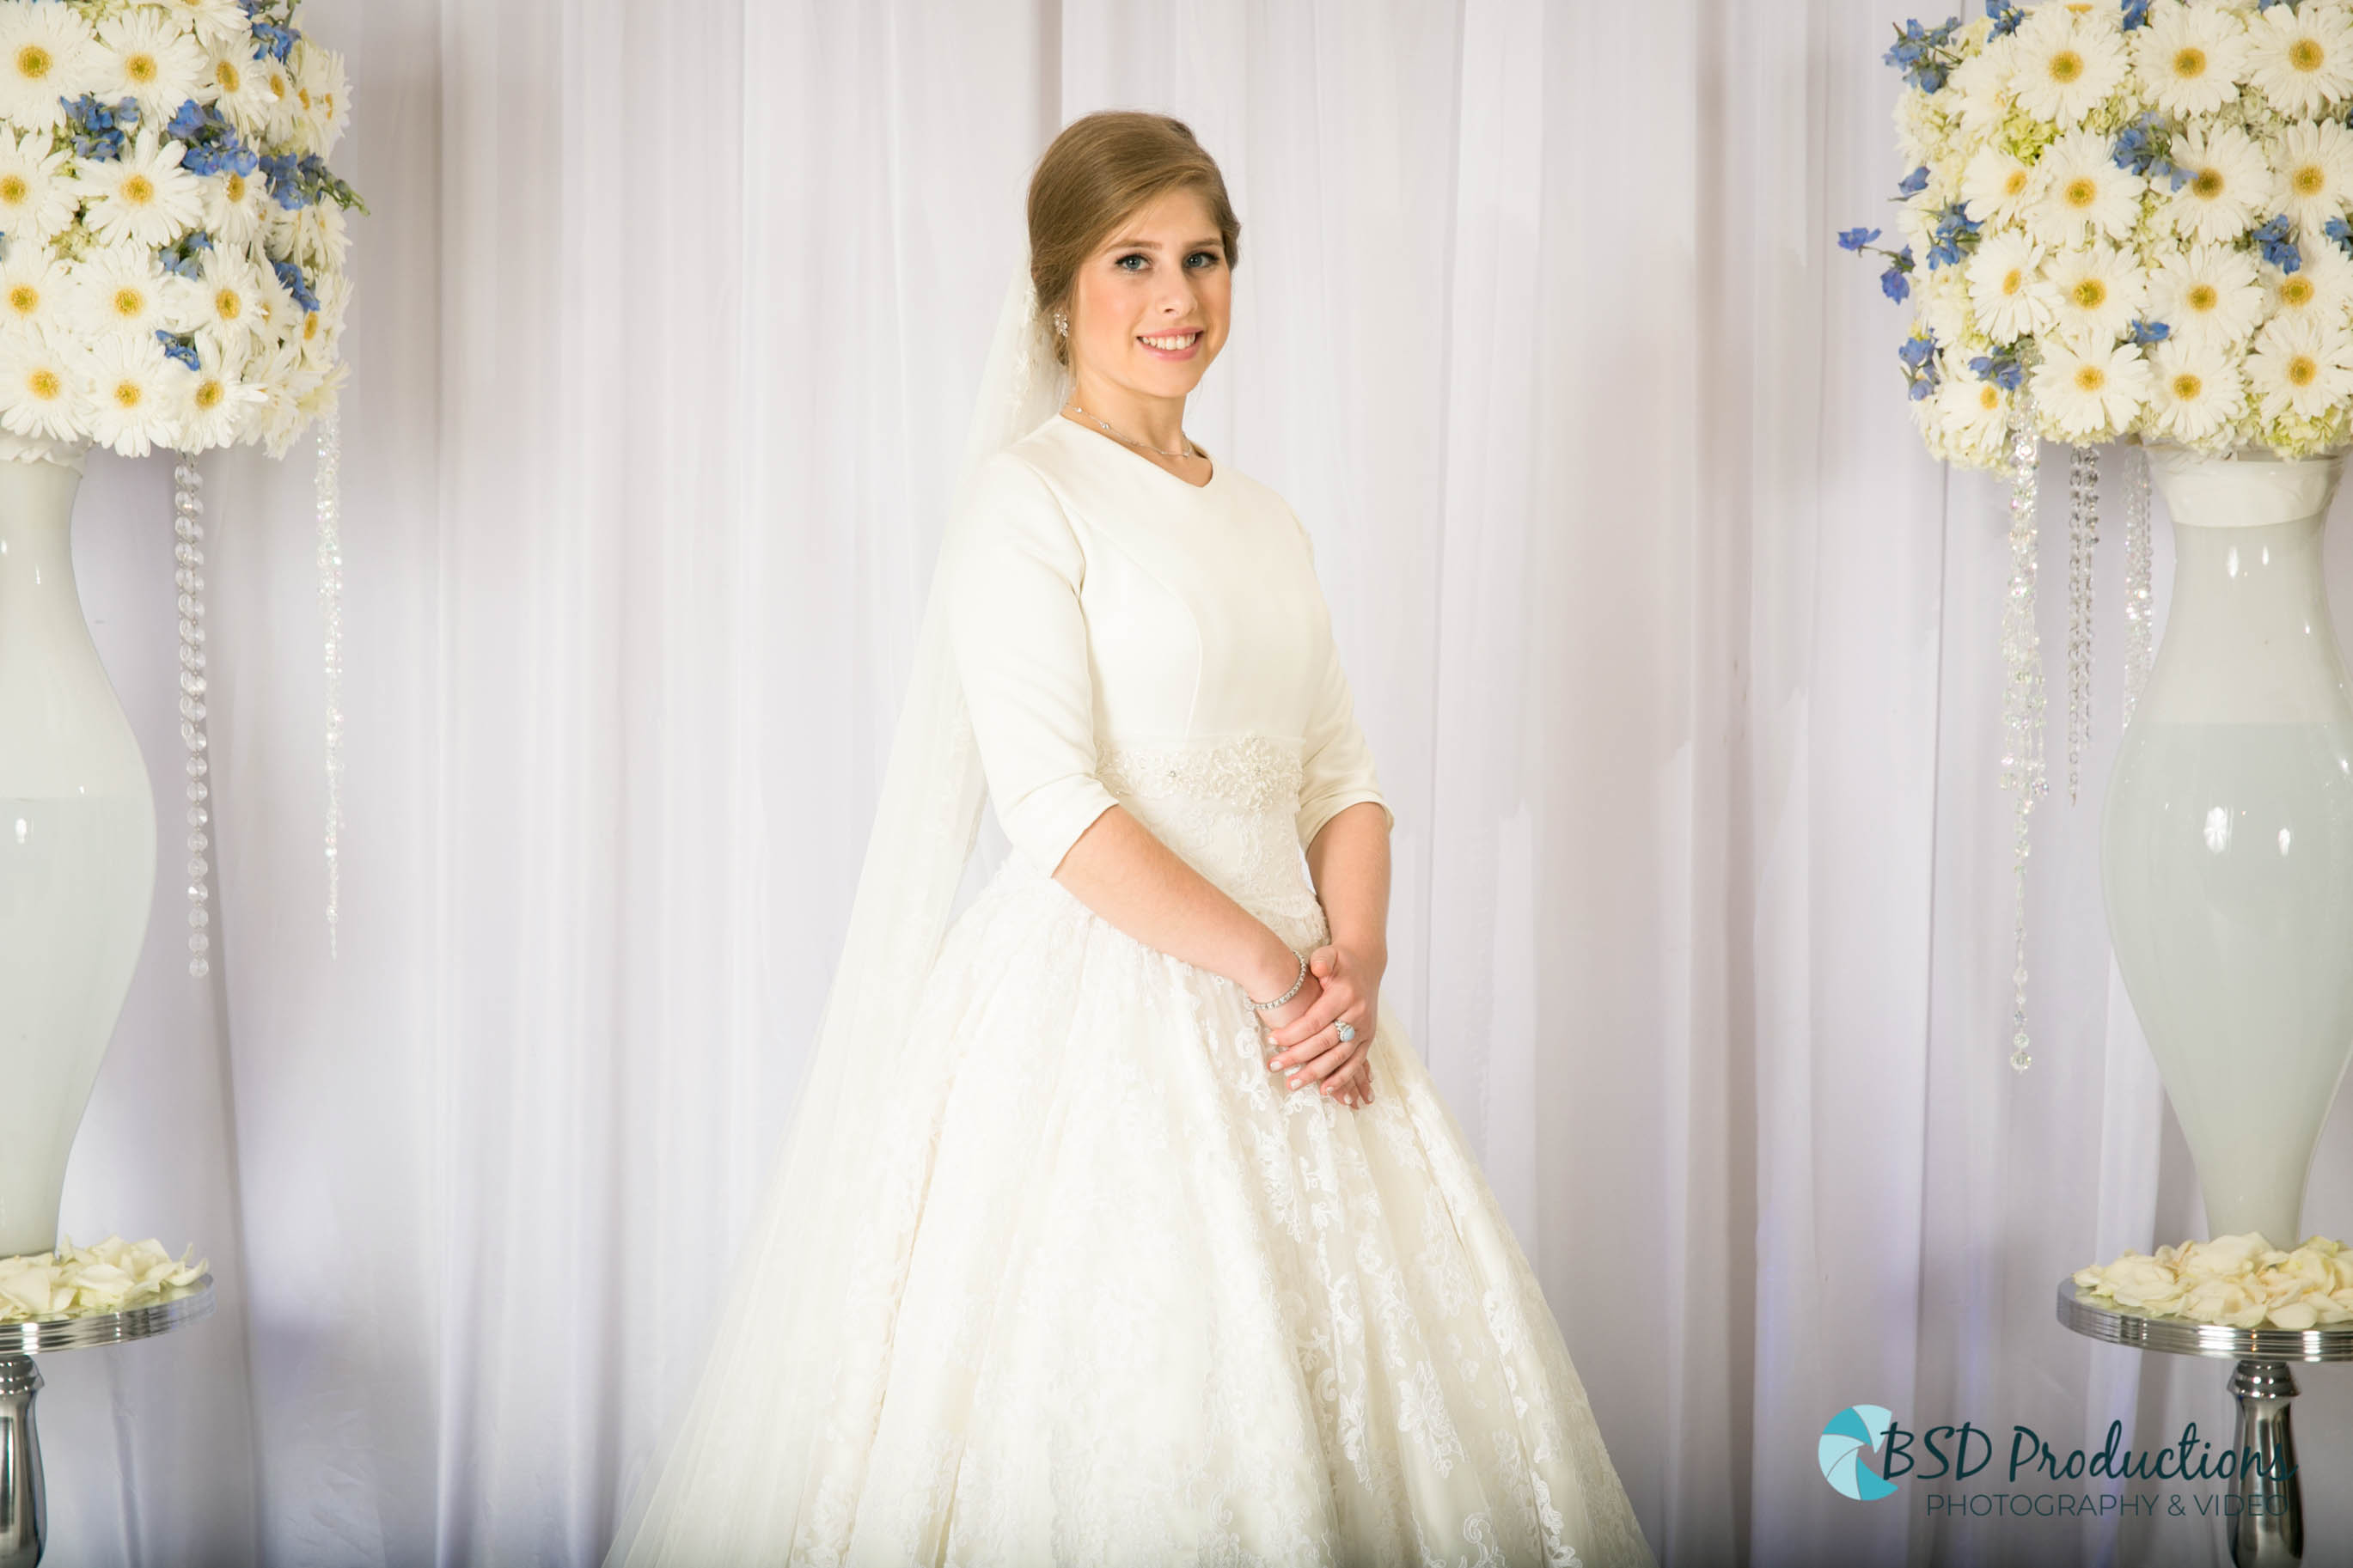 UH5A7039 Wedding – BSD Productions Photography